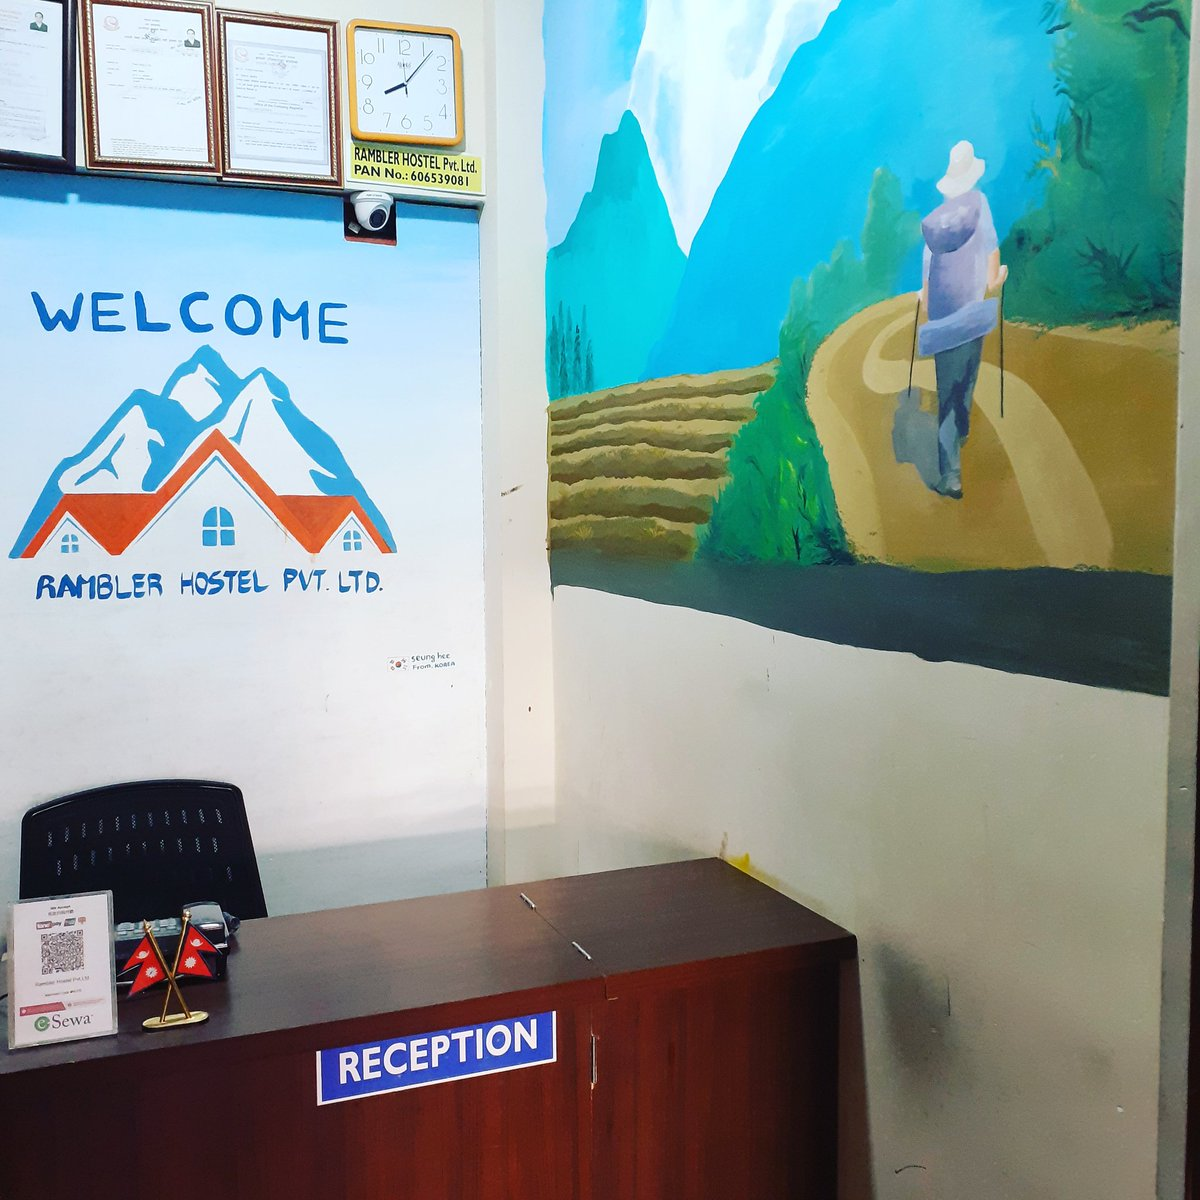 We respact our Guest. We will required your details to check in then only you will get room. Our responsibility for our guest safty. #hostelworld #travelerblogger #solotraveler #guestsloveus #holiday #ramblerhostel #localhostel #booking #kathmanduvalley #namaste #welcome